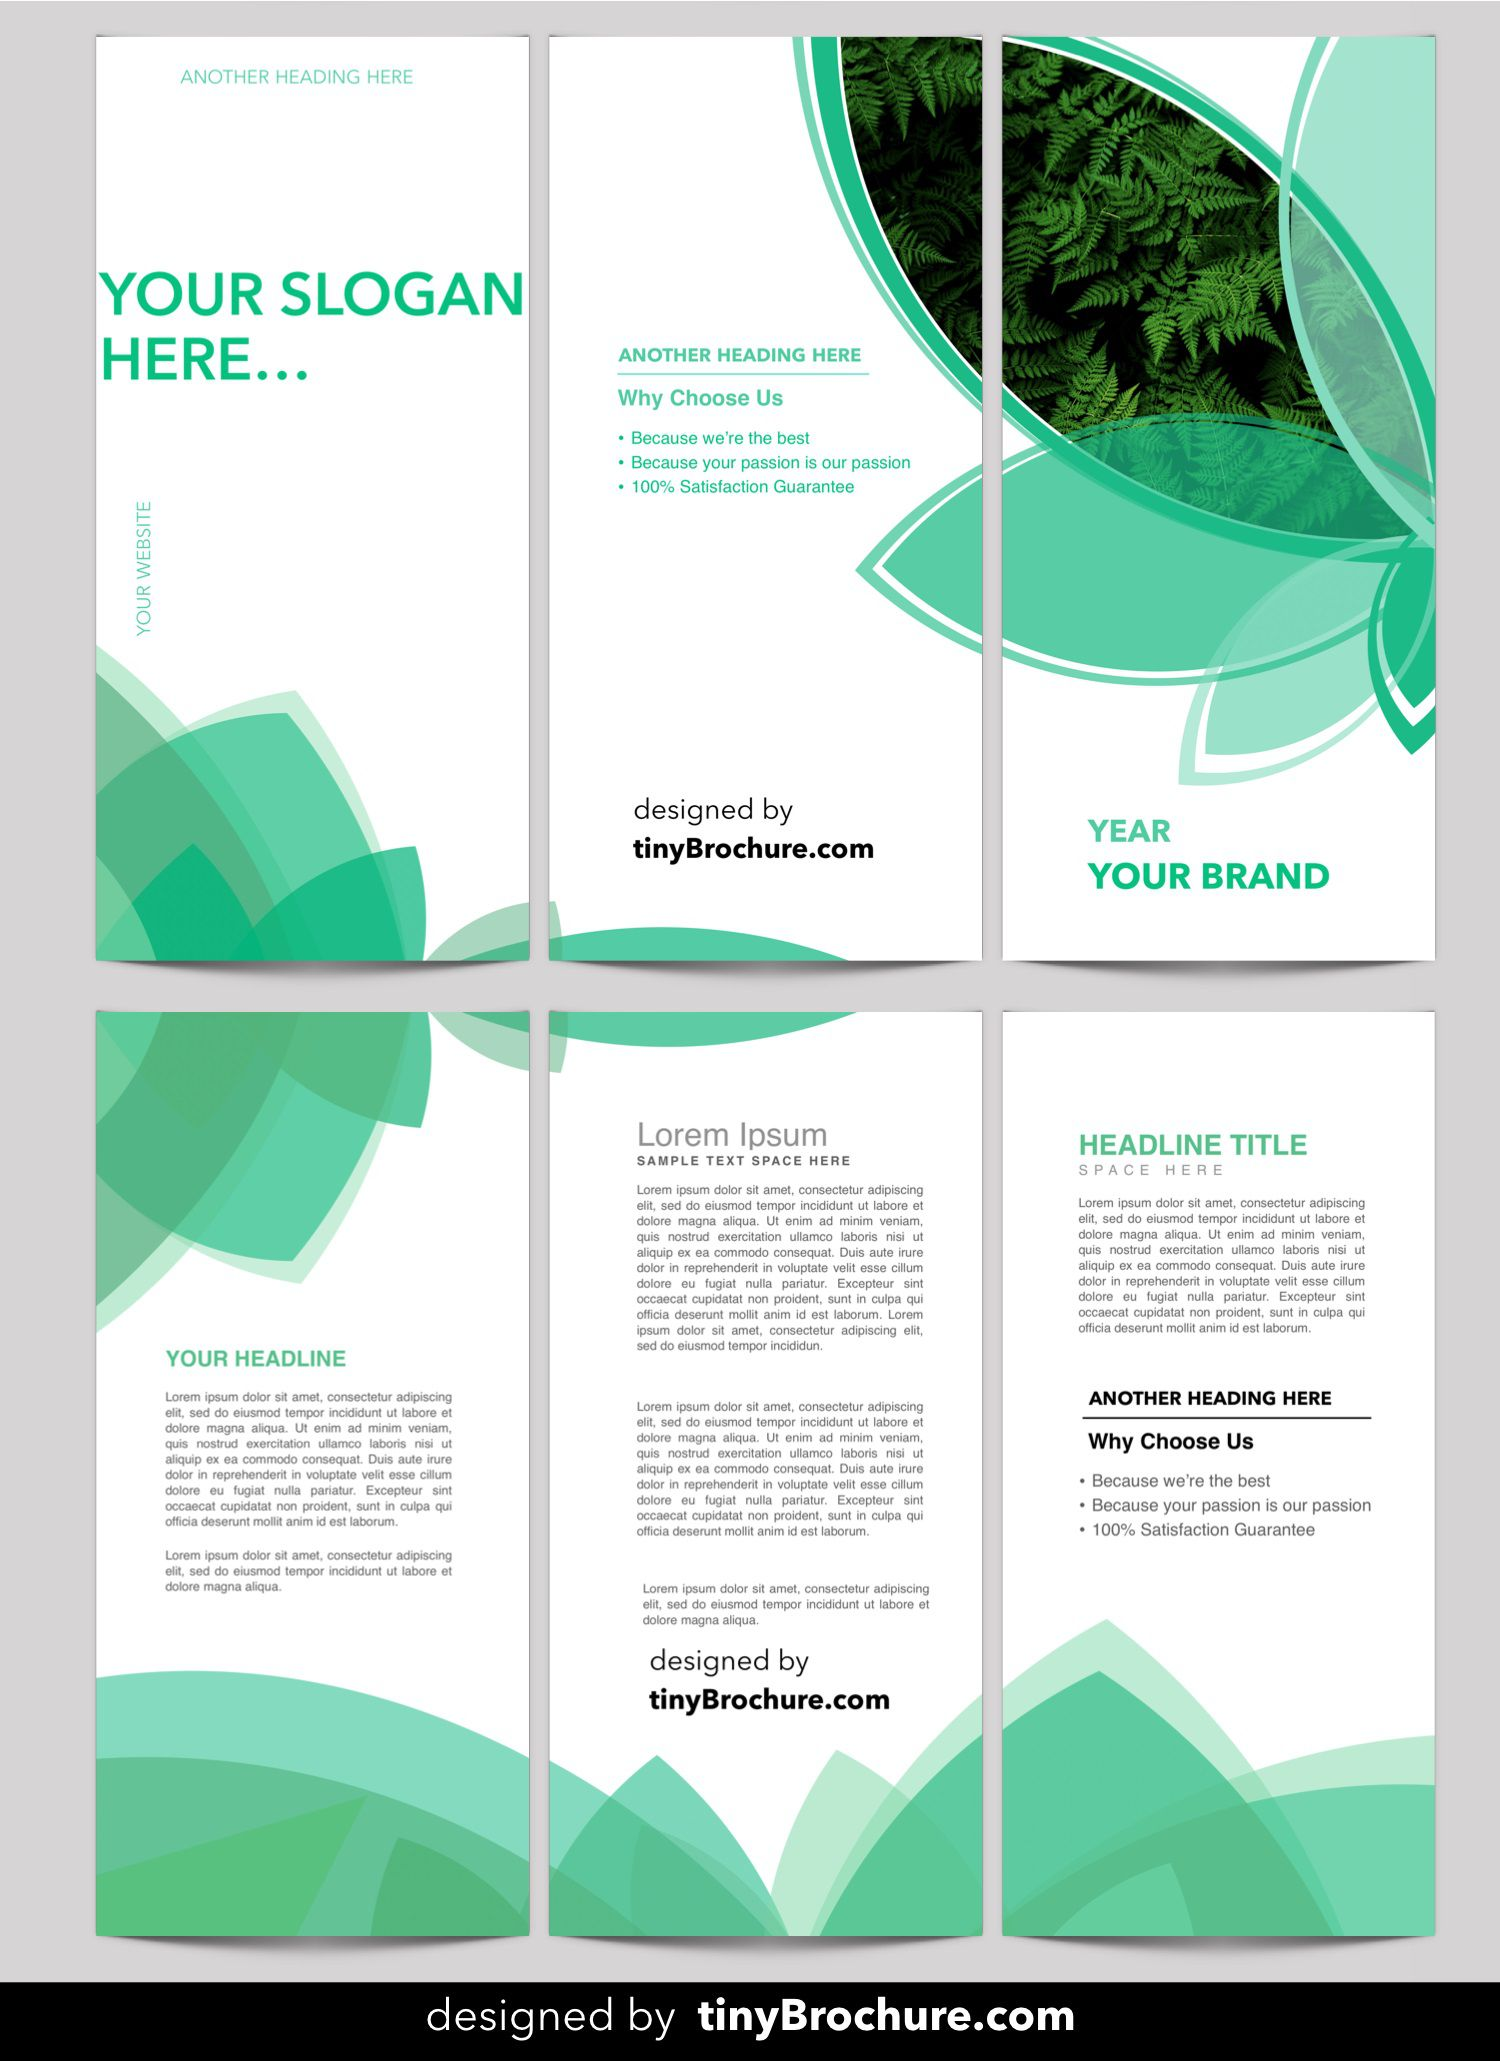 000 Breathtaking Brochure Template Free Download High Definition  Microsoft Publisher Corporate Psd For Adobe IllustratorFull